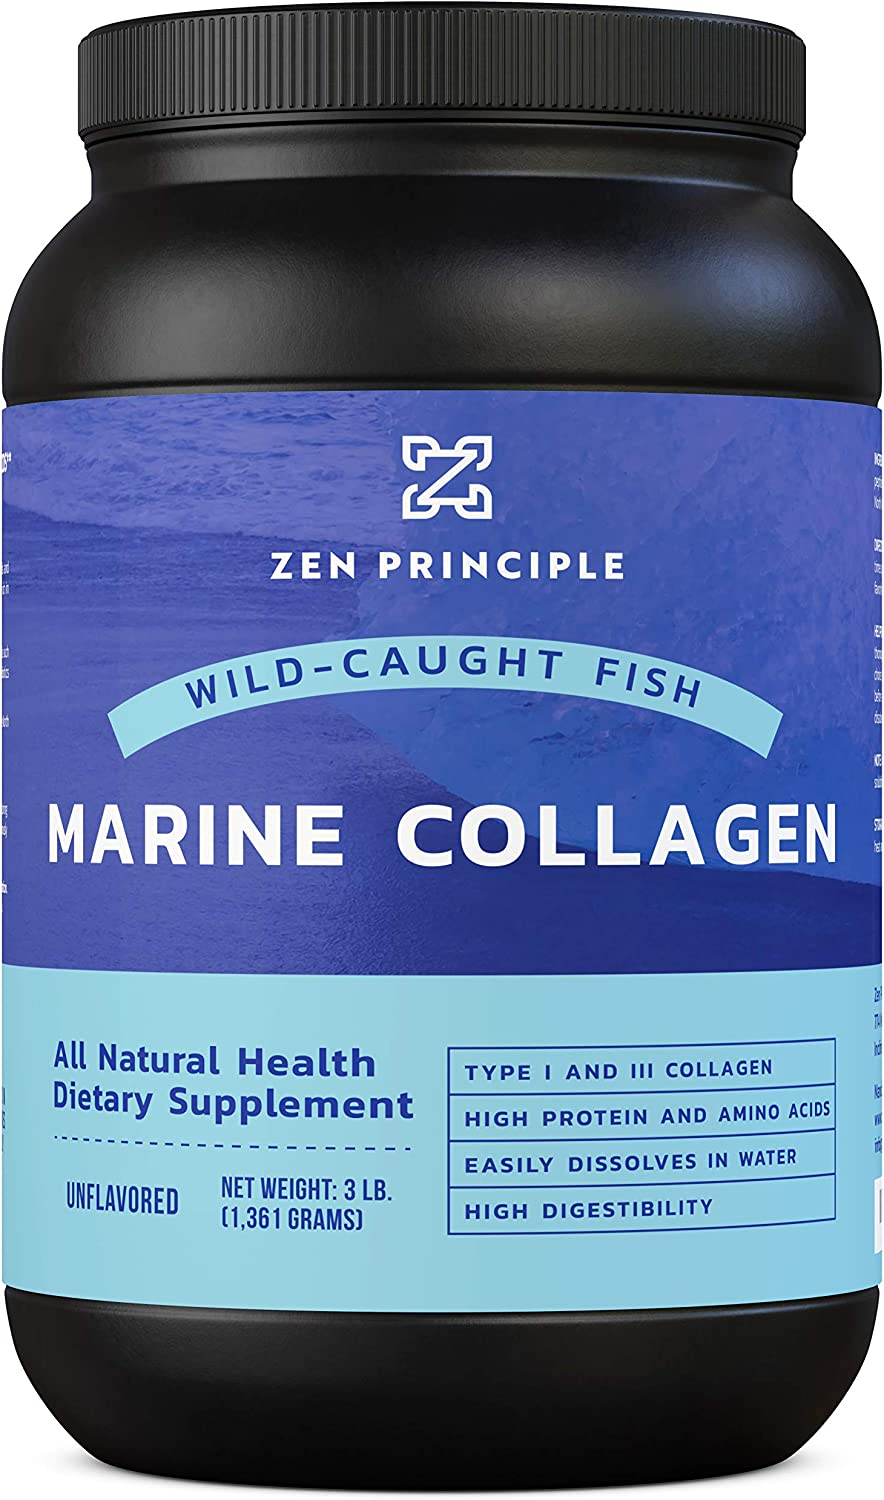 Extra Large 3 lb. Marine Collagen Peptides Powder. Wild-Caught Fish, Non-GMO. Supports Healthy Skin, Hair, Joints and Bones. Hydrolyzed Type 1 & 3 Protein. Amino Acids, Unflavored, Easy to Mix.